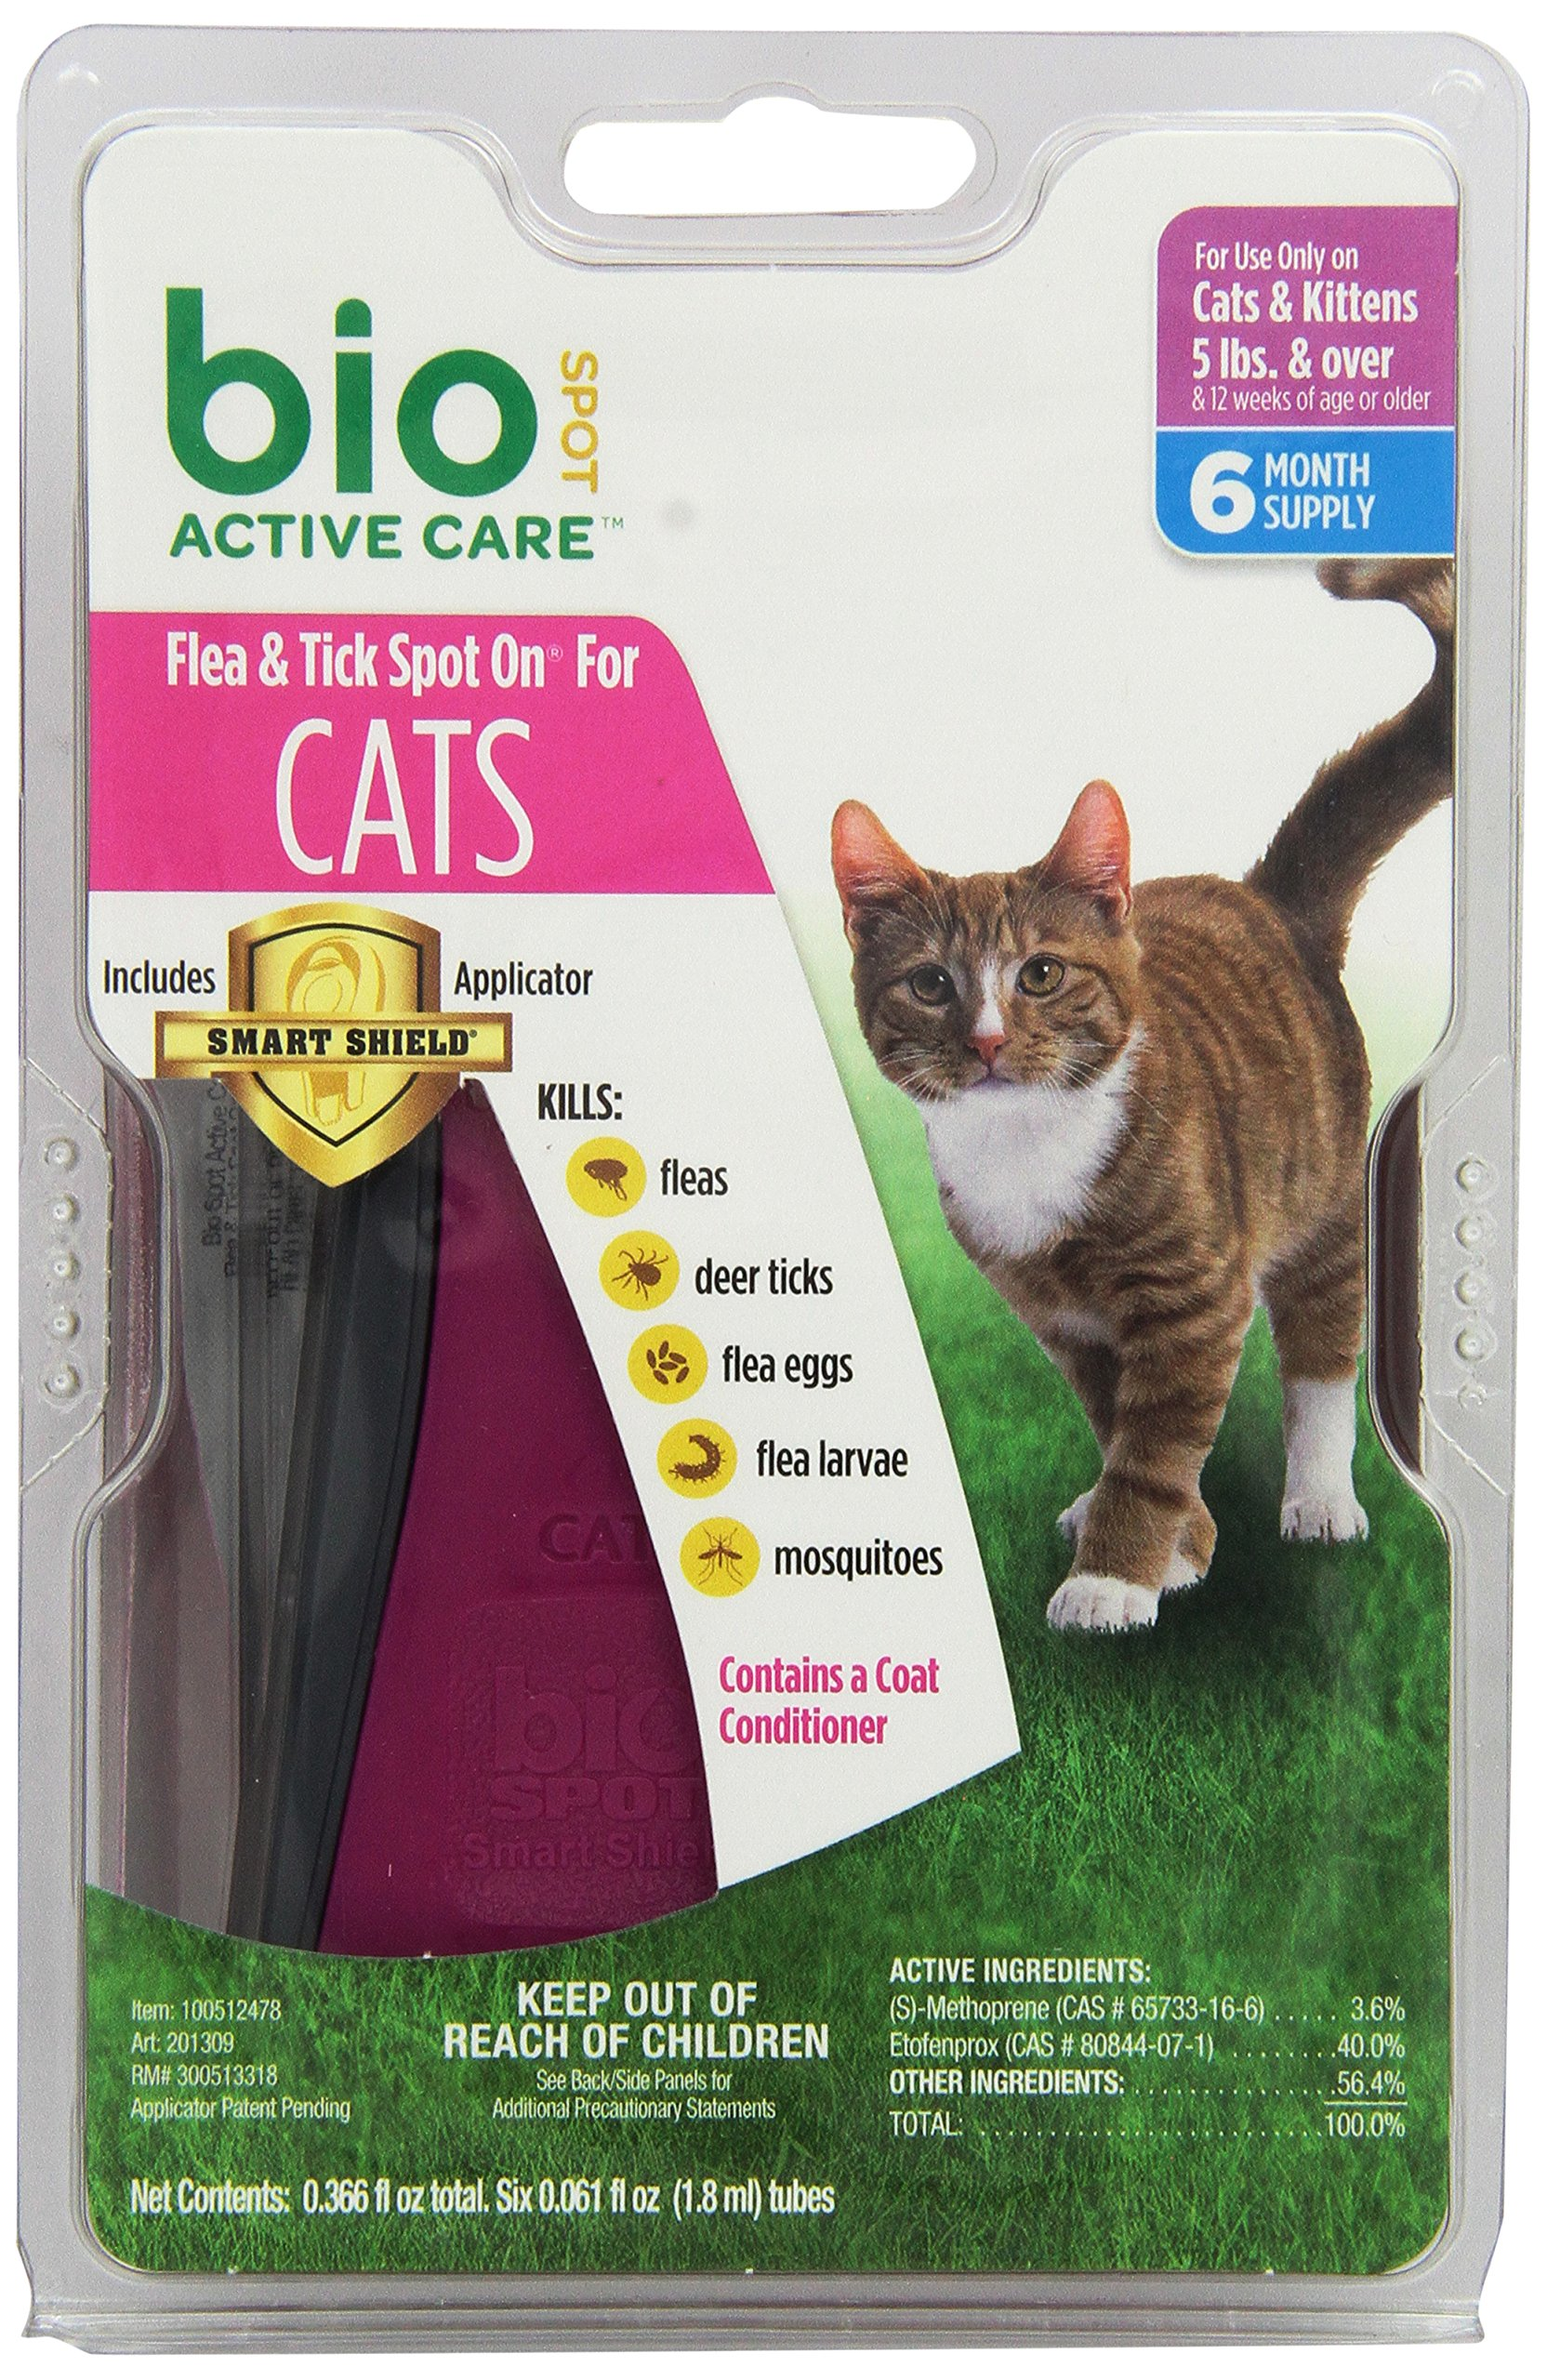 Bio Spot Active Care Spot On with Applicator for Cats over 5 lbs, 6 Month Supply